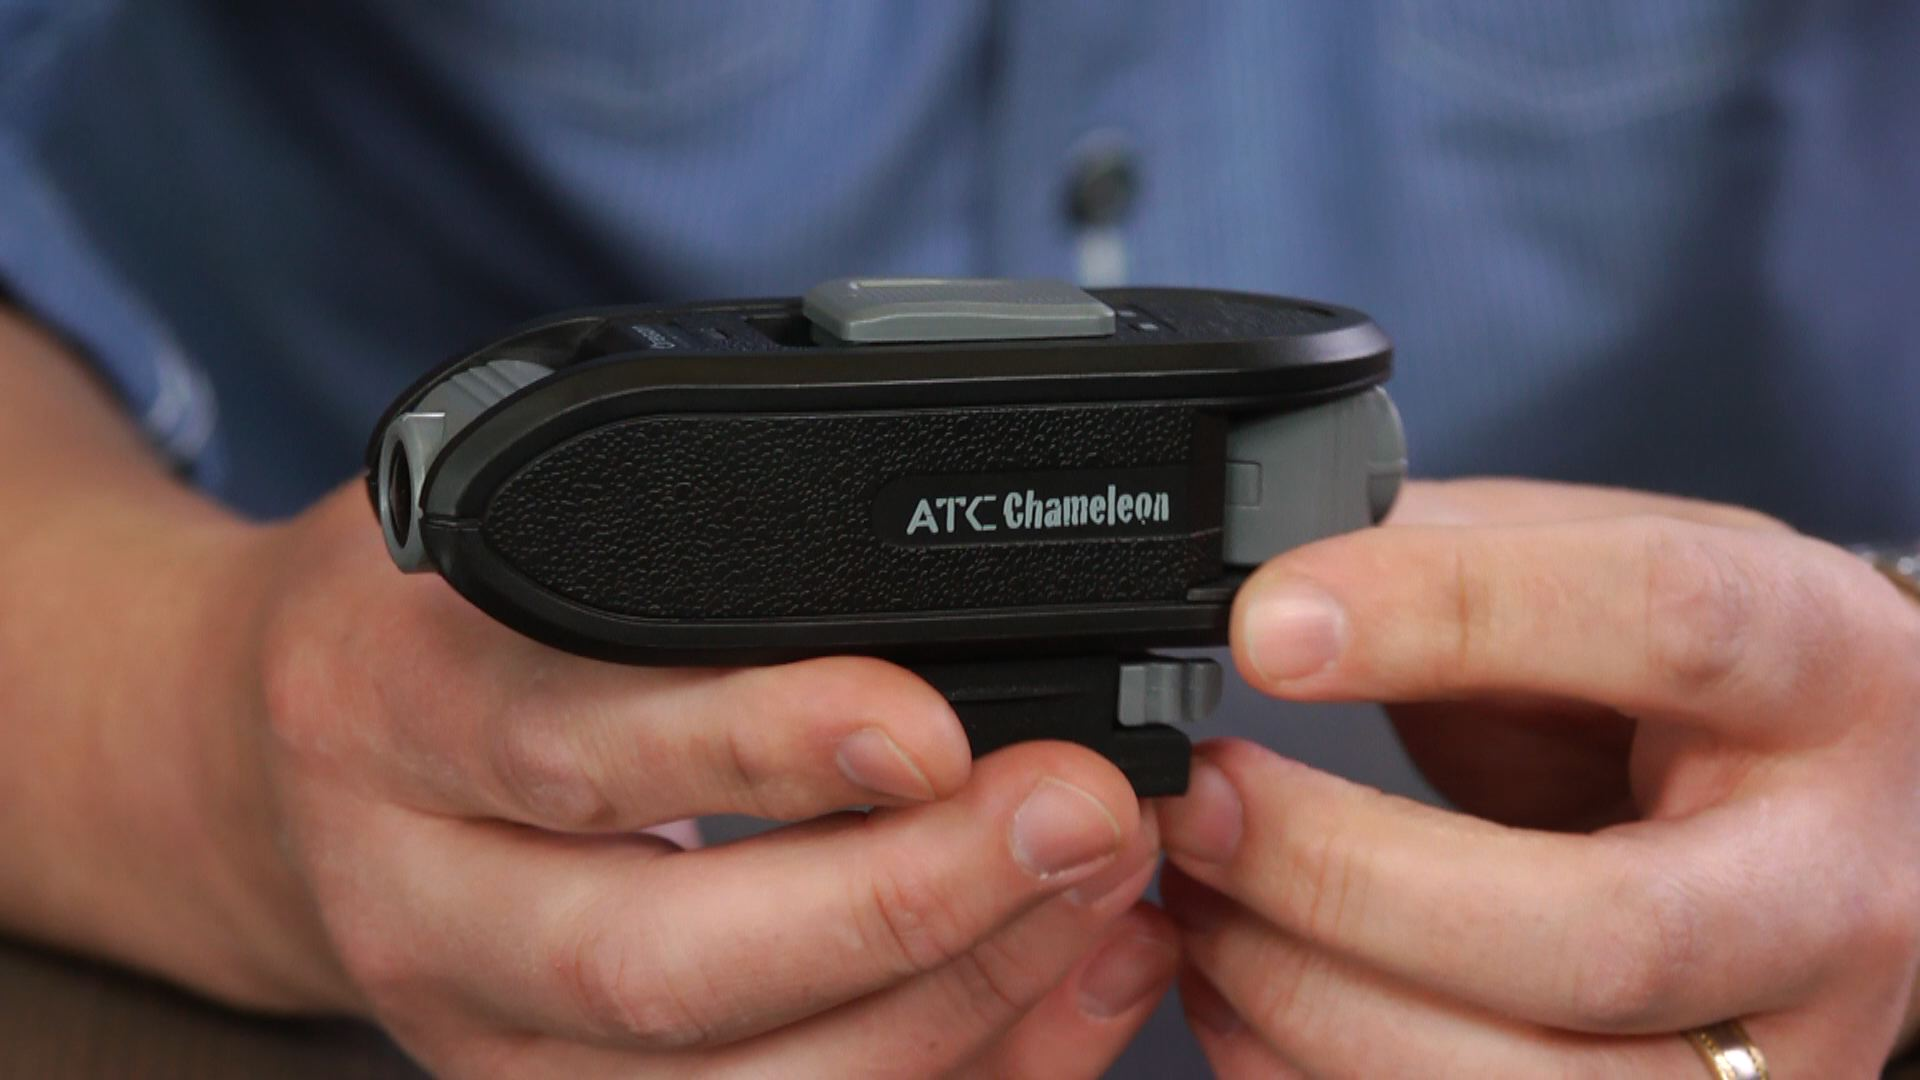 Video: Oregon Scientific's ATC Chameleon action cam puts two cameras in one body